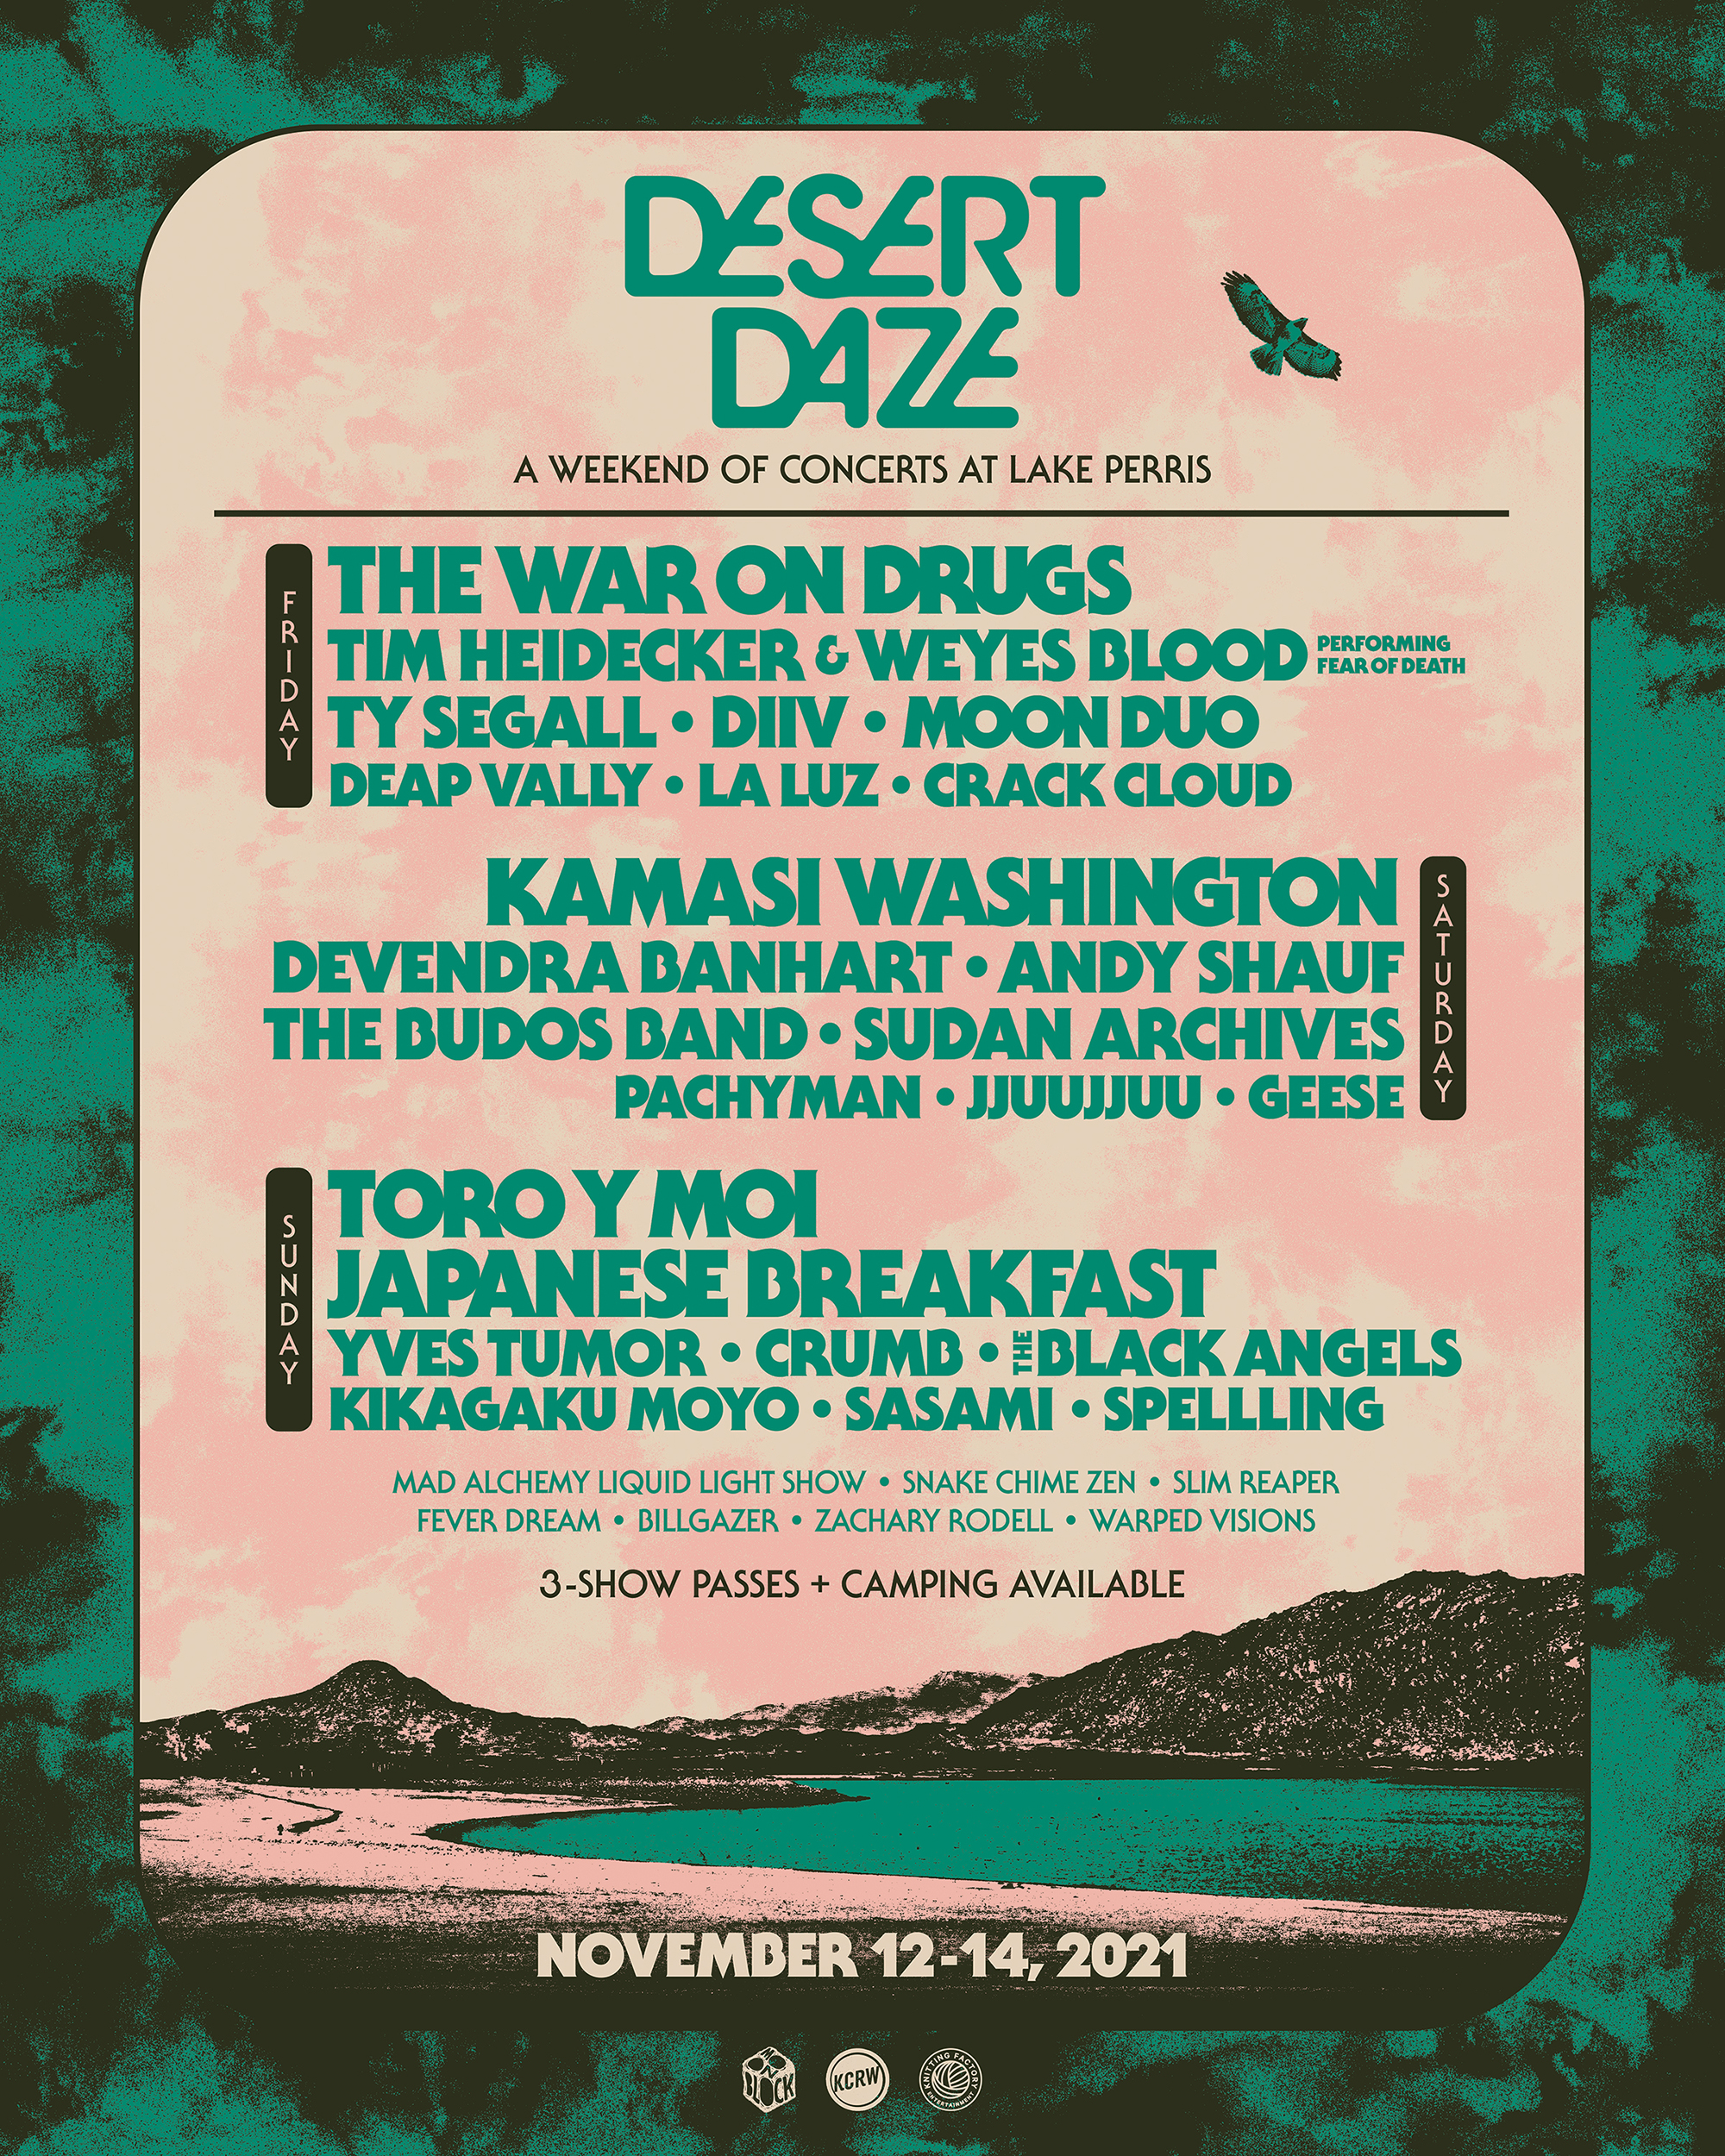 Desert Daze Now Back To One Weekend At Lake Perris With The War On Drugs, Toro Y Moi, Kamasi Washington, & More